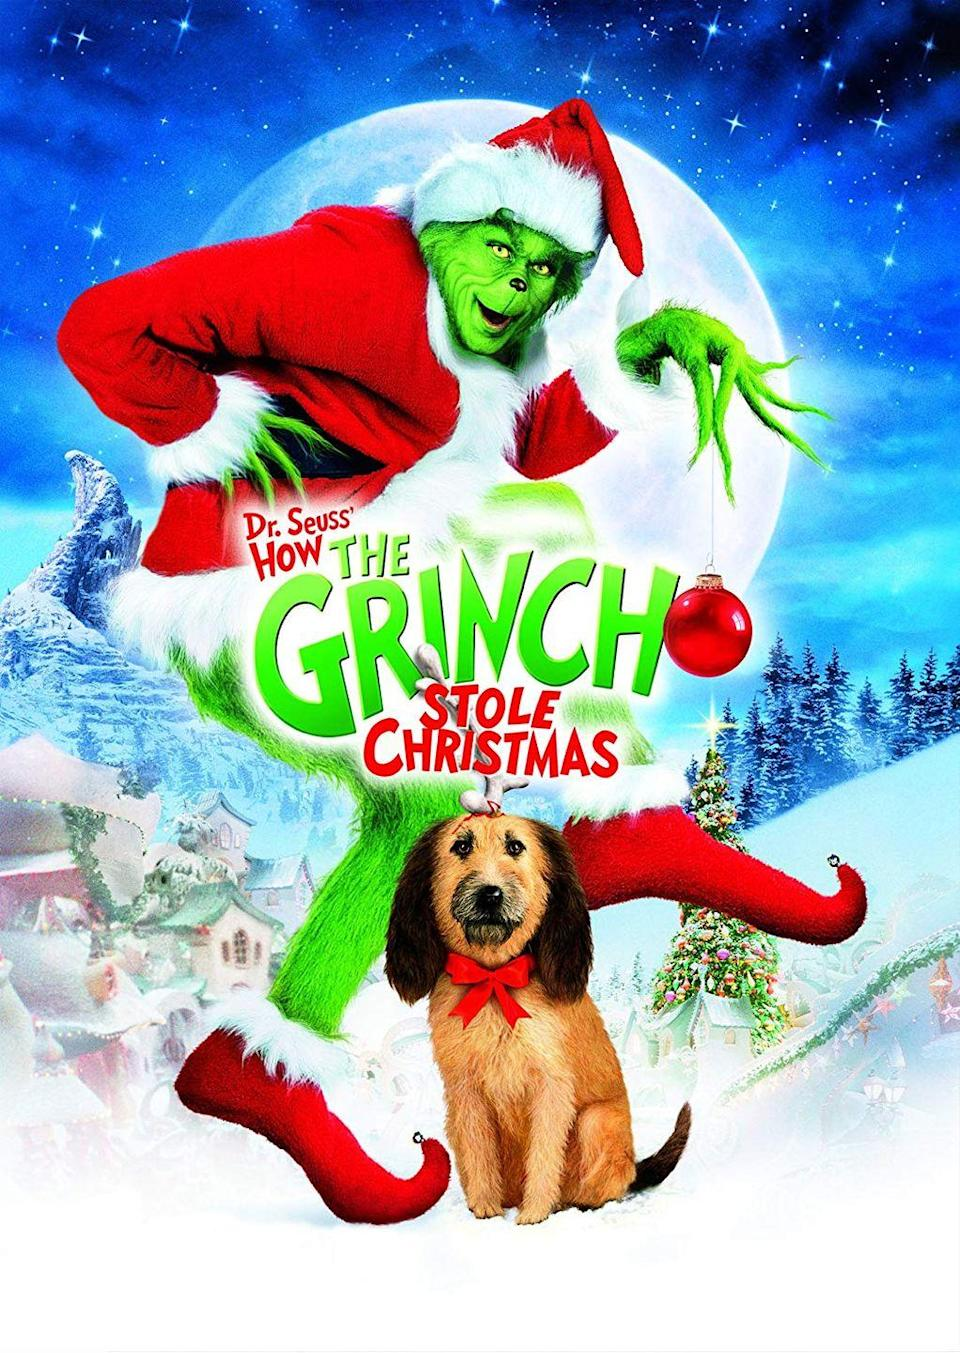 """<p>The Grinch finally got a live-action, feature-length film in 2000 when Jim Carrey took the lead in this whimsical Christmas tale. Before you shave off your green fur to fit in with the cookie-cutter crowd, show off your individuality this season and spread some good cheer.</p><p><a class=""""link rapid-noclick-resp"""" href=""""https://www.amazon.com/Dr-Seuss-Grinch-Stole-Christmas/dp/B009CG9LZI/?tag=syn-yahoo-20&ascsubtag=%5Bartid%7C10055.g.1315%5Bsrc%7Cyahoo-us"""" rel=""""nofollow noopener"""" target=""""_blank"""" data-ylk=""""slk:WATCH NOW"""">WATCH NOW</a></p>"""